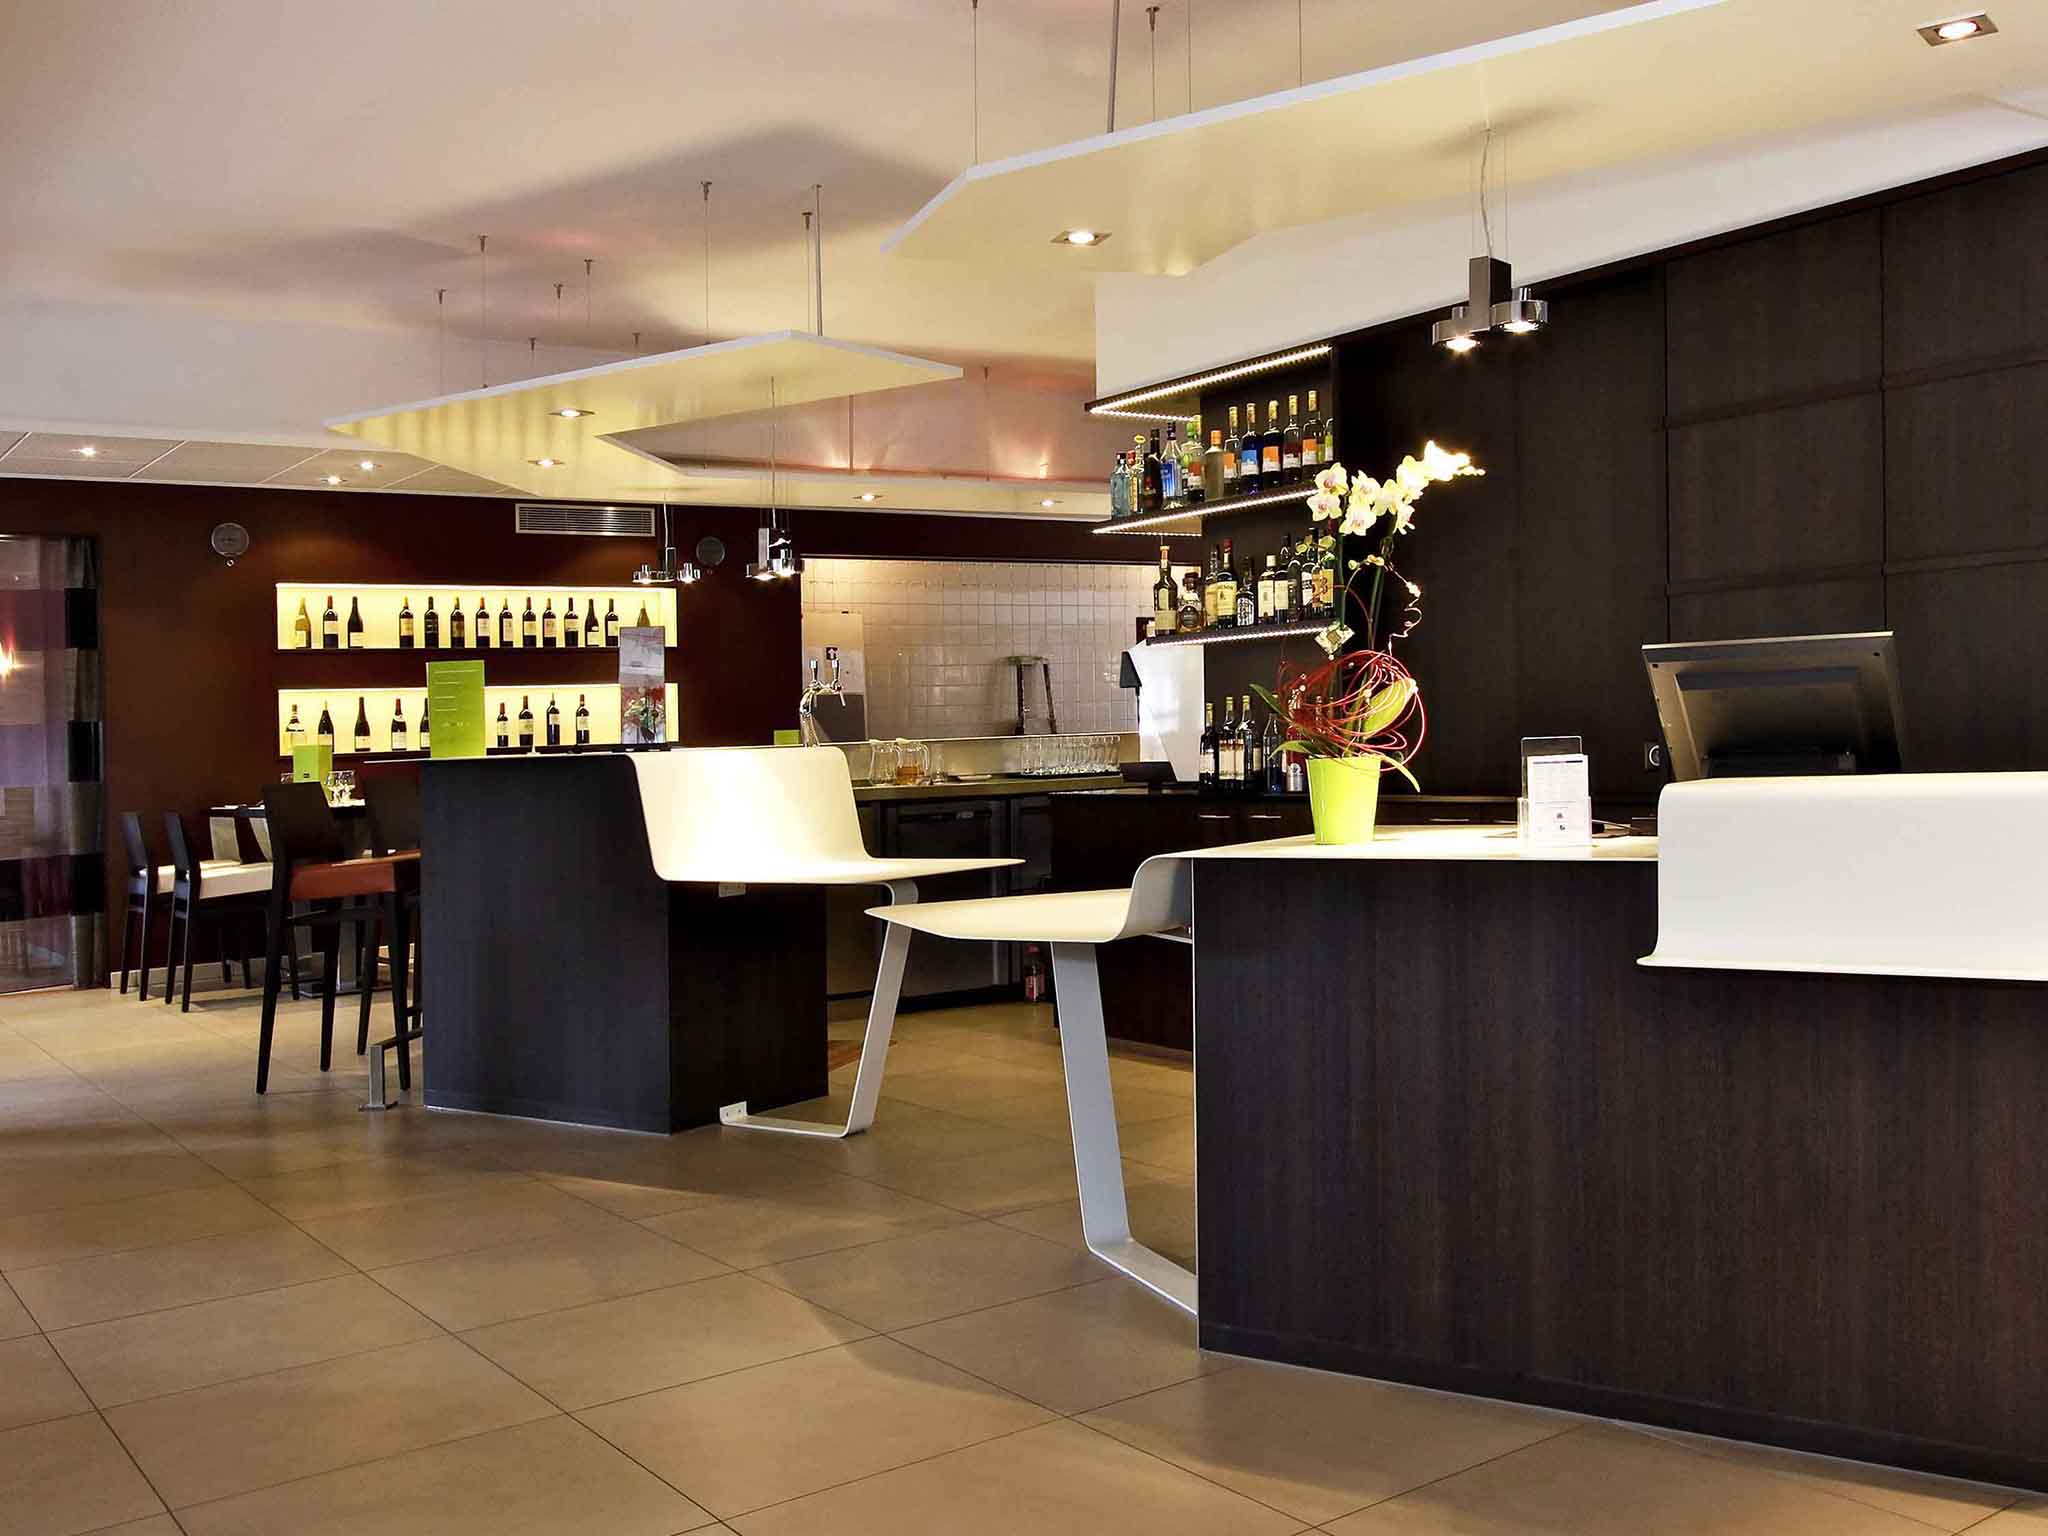 Hotel – Hotel Mercure Luxeuil Les Bains Hexagone